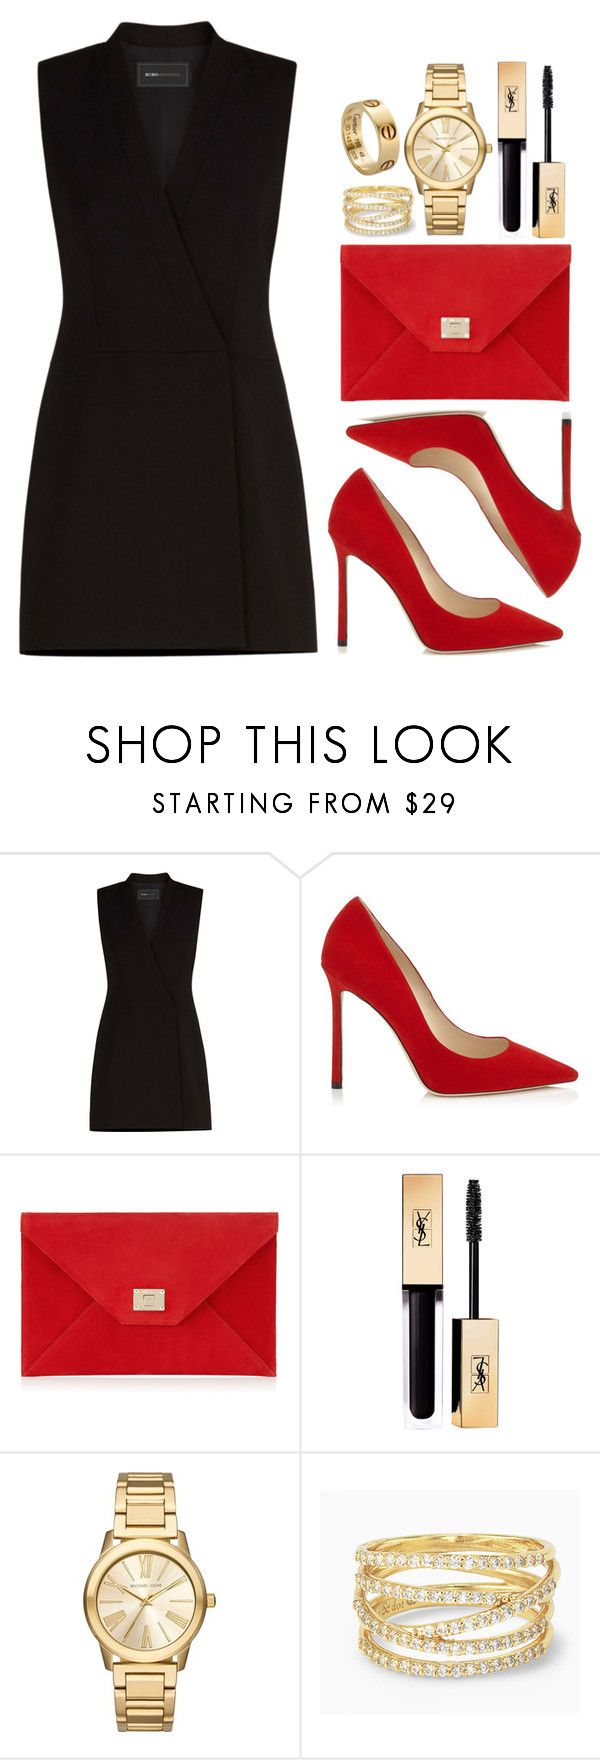 """Sin título #12181"" by vany-alvarado ❤ liked on Polyvore featuring BCBGMAXAZRIA, Jimmy Choo, Yves Saint Laurent, Michael Kors, Stella & Dot and Cartier"